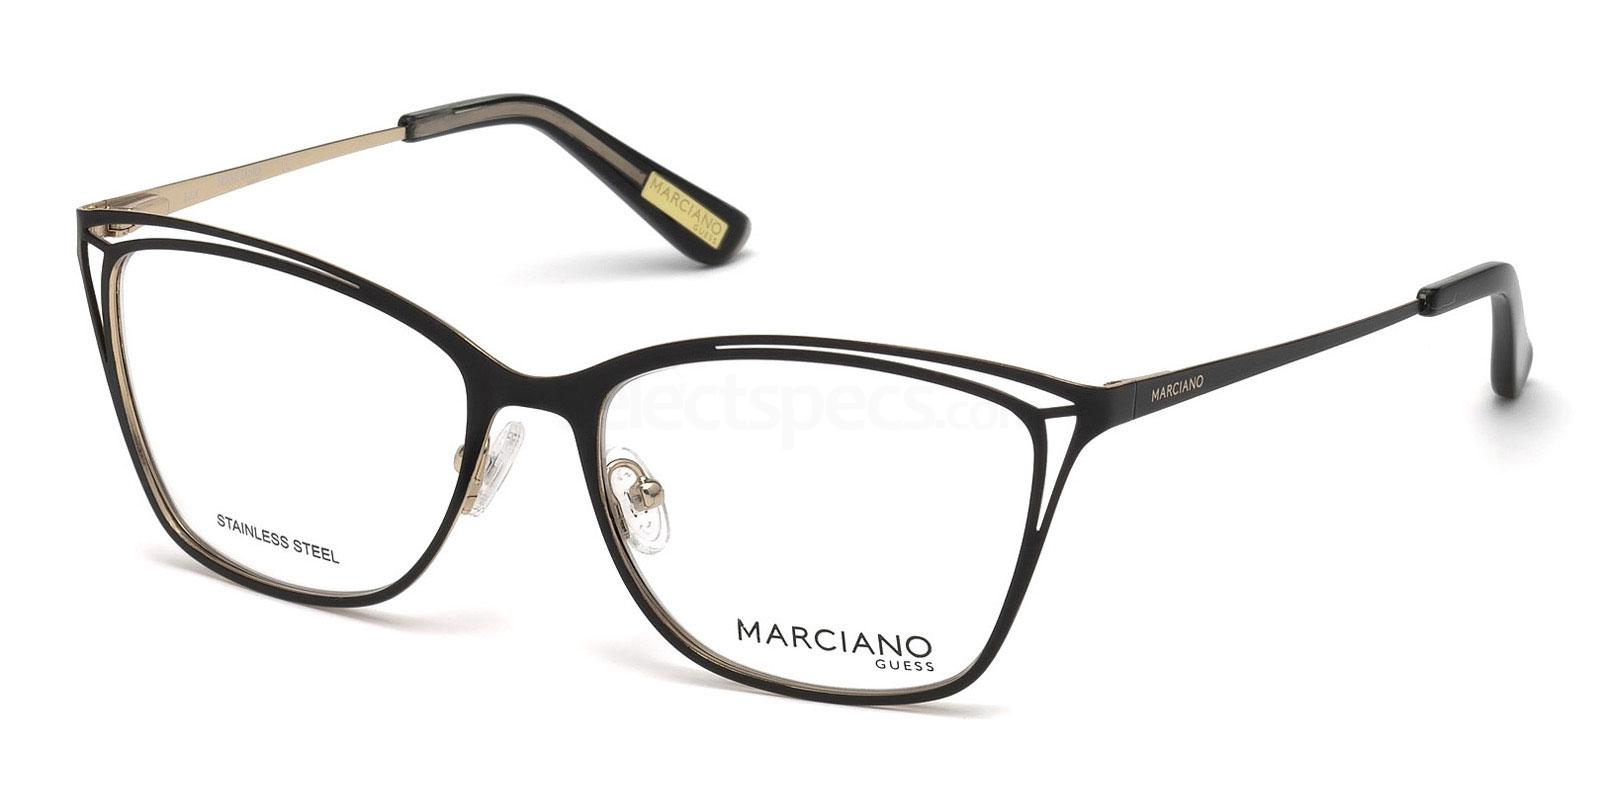 002 GM0310 Glasses, Guess by Marciano